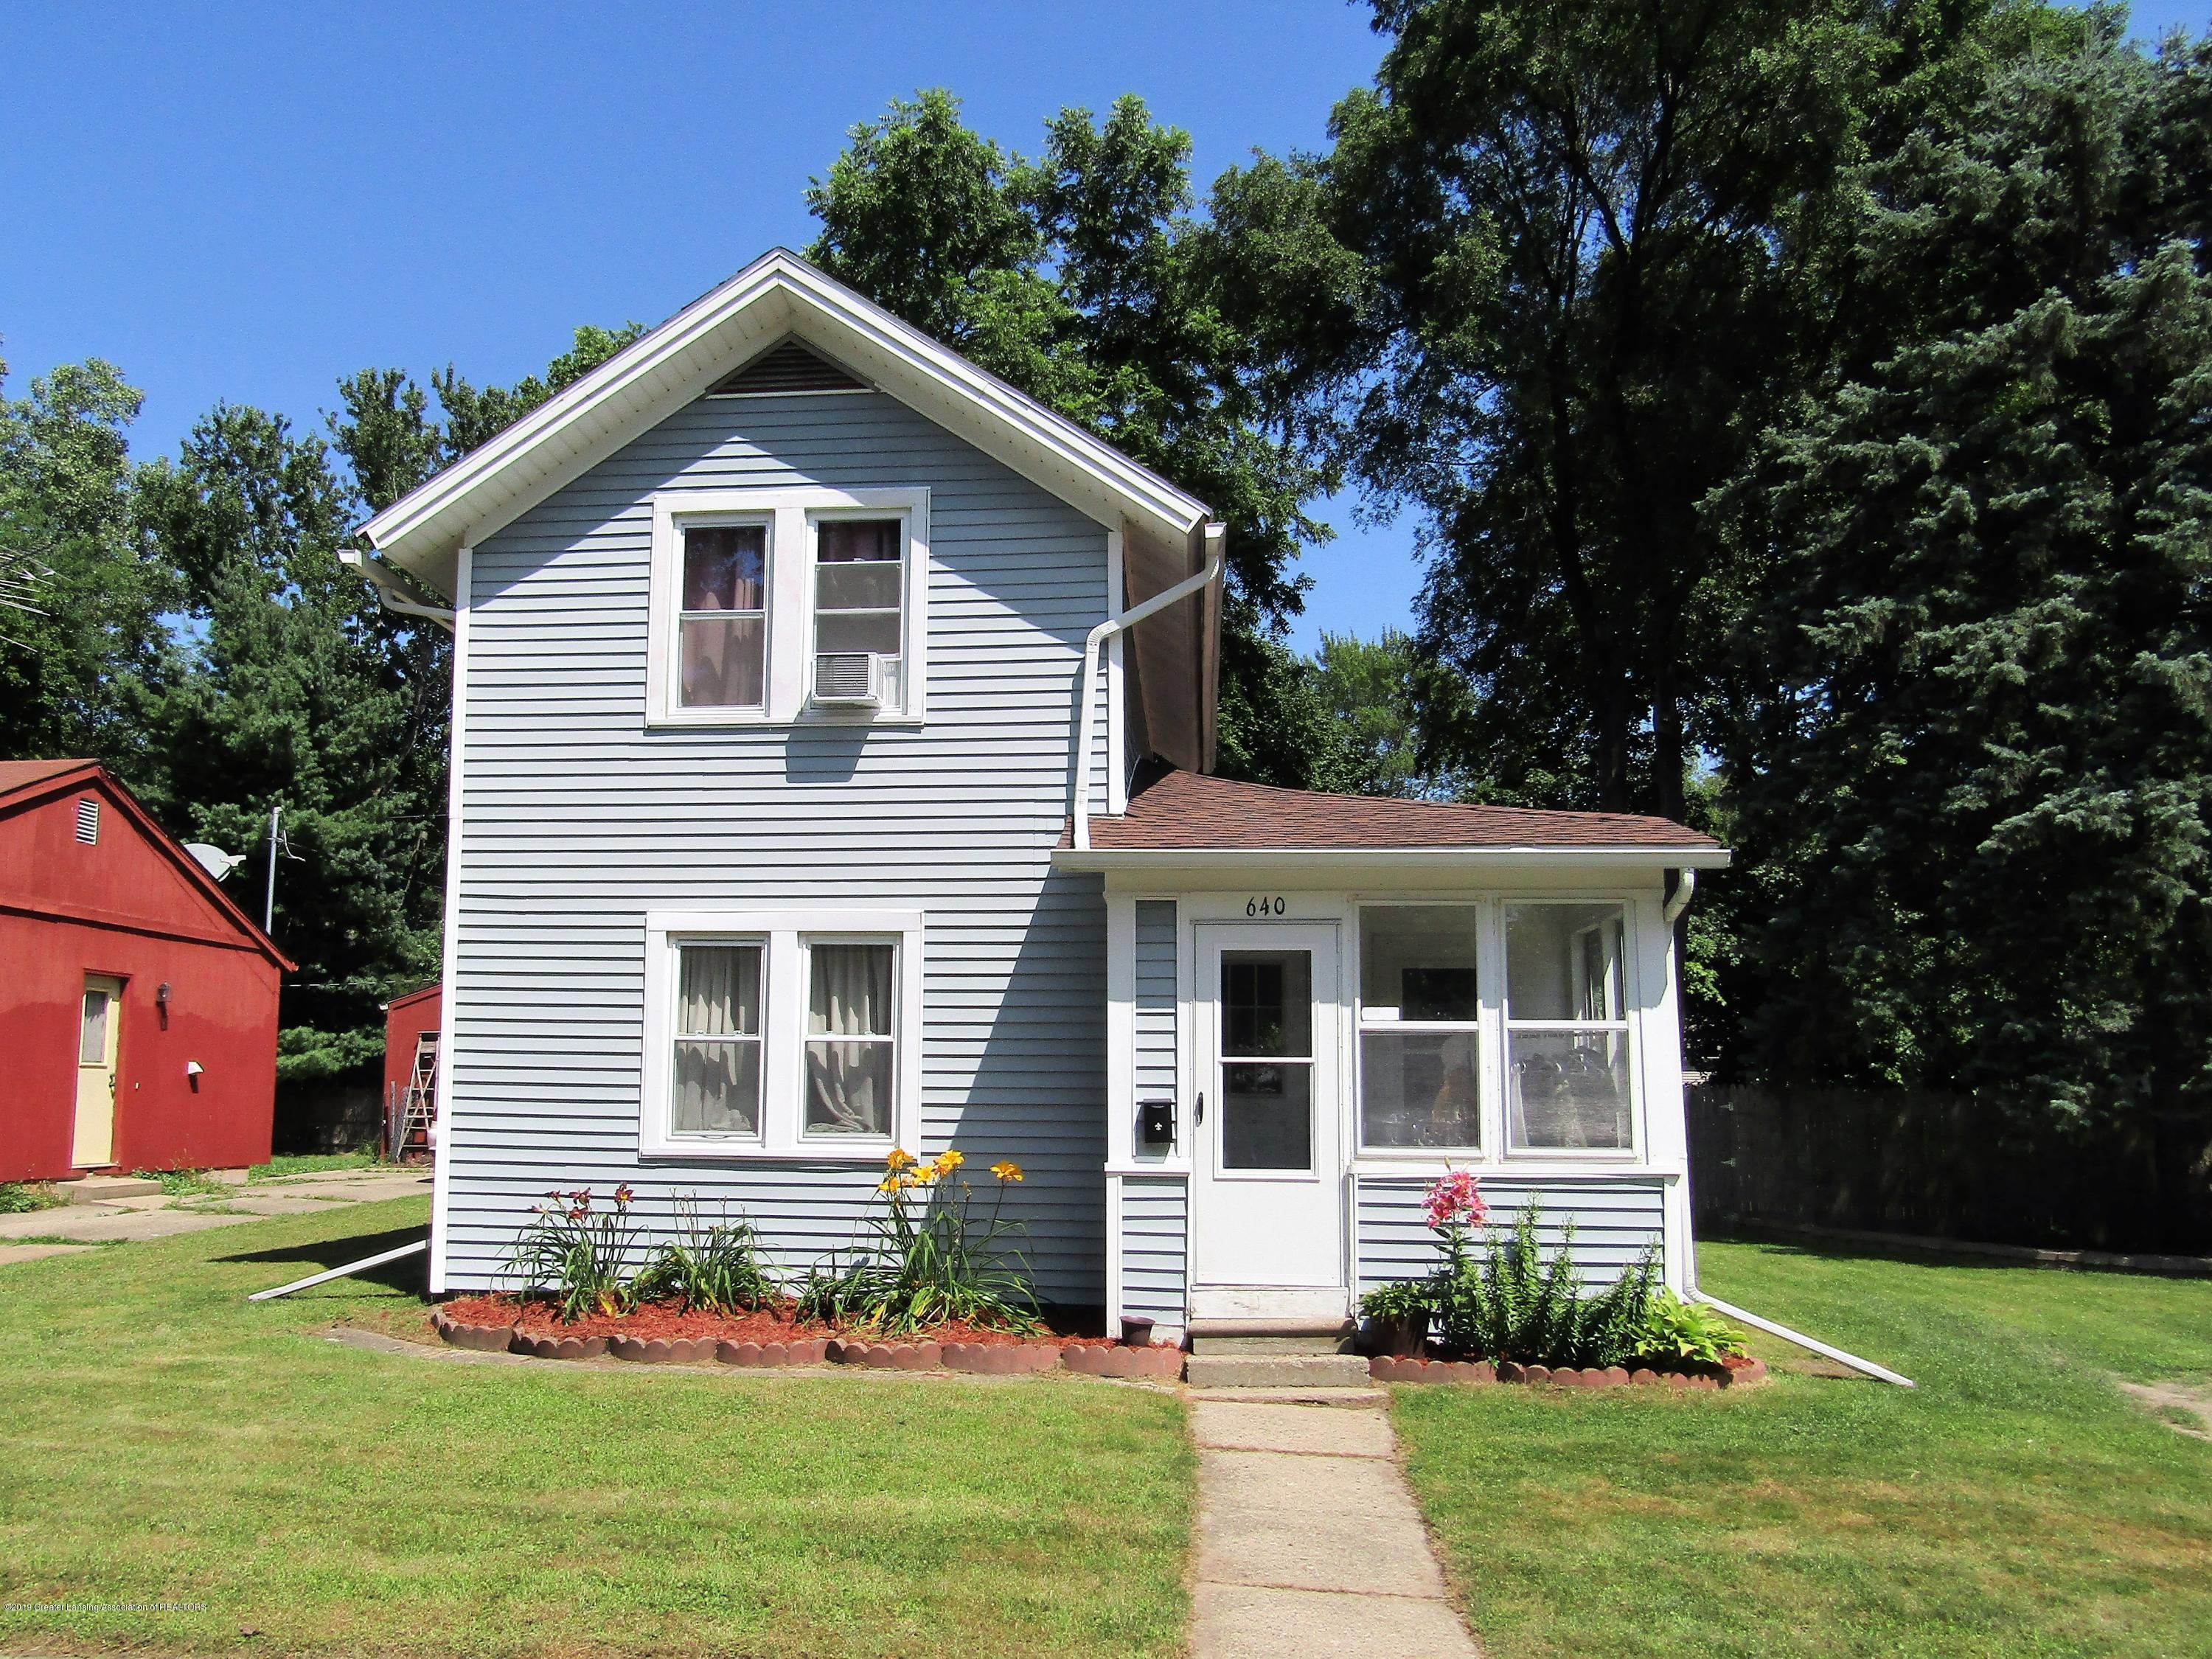 640 Fuller St - 640 Fuller - Williamston - 1